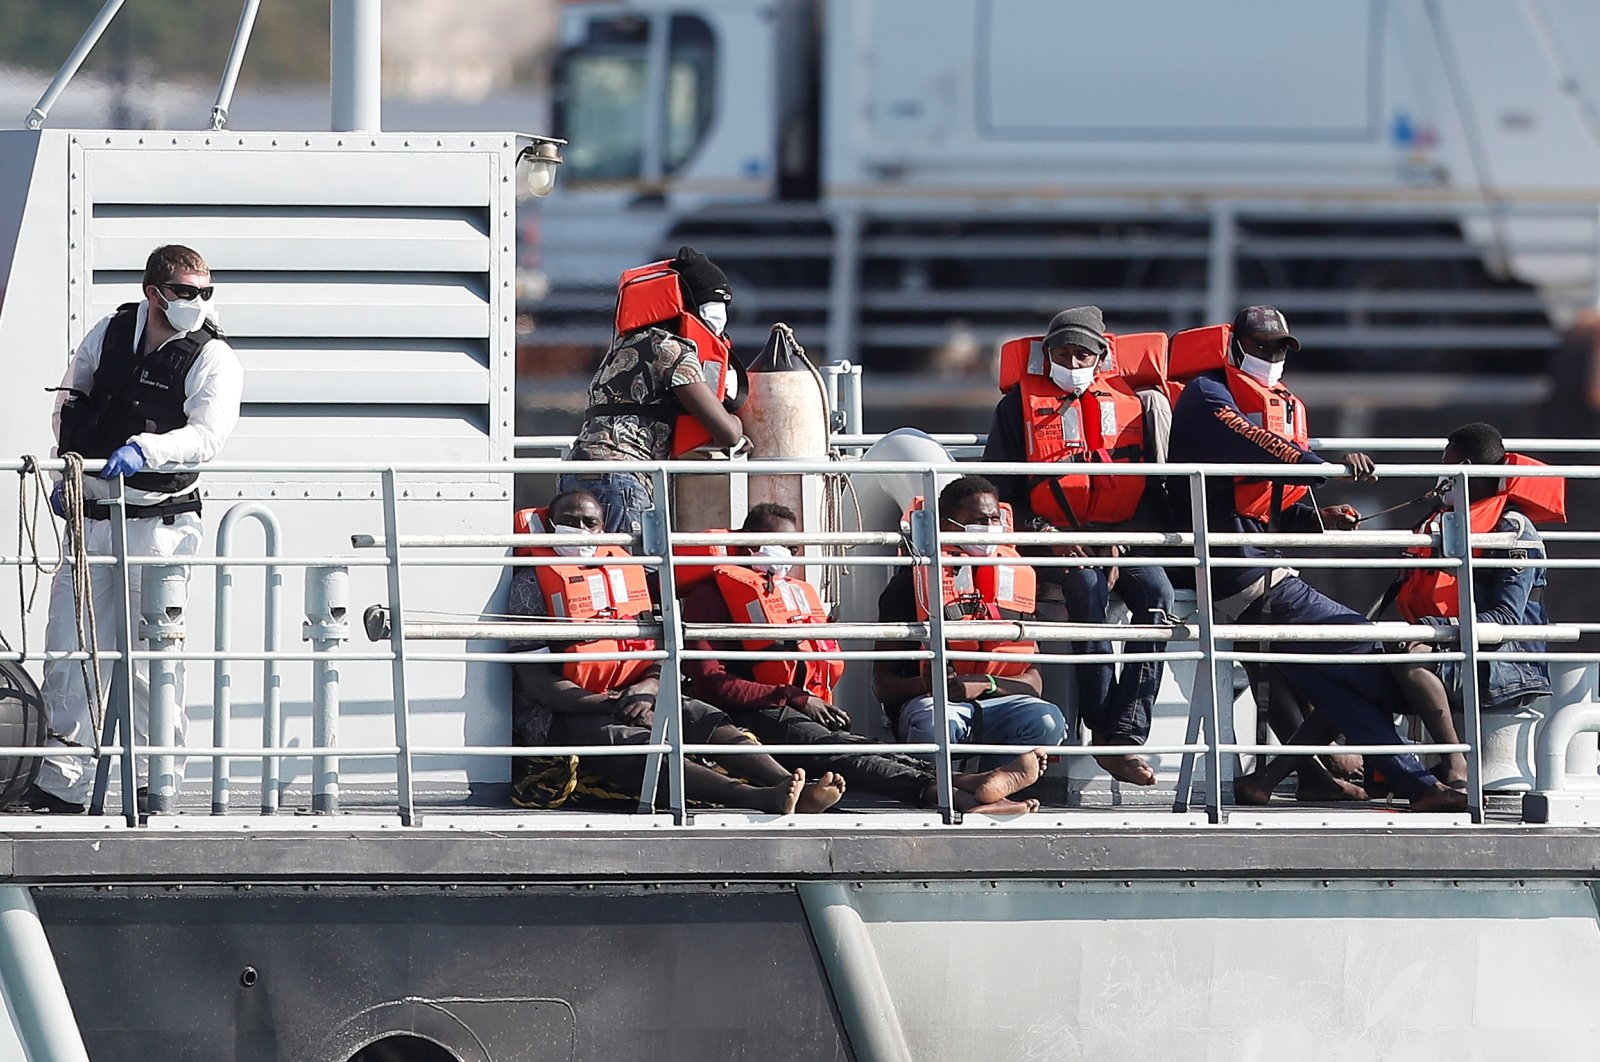 Migrants claiming to be from Darfur, Sudan sit on a Border Force vessel after being rescued as they crossed the English Channel in an inflatable boat near Dover, Britain, August 4, 2021. (Reuters Photo)